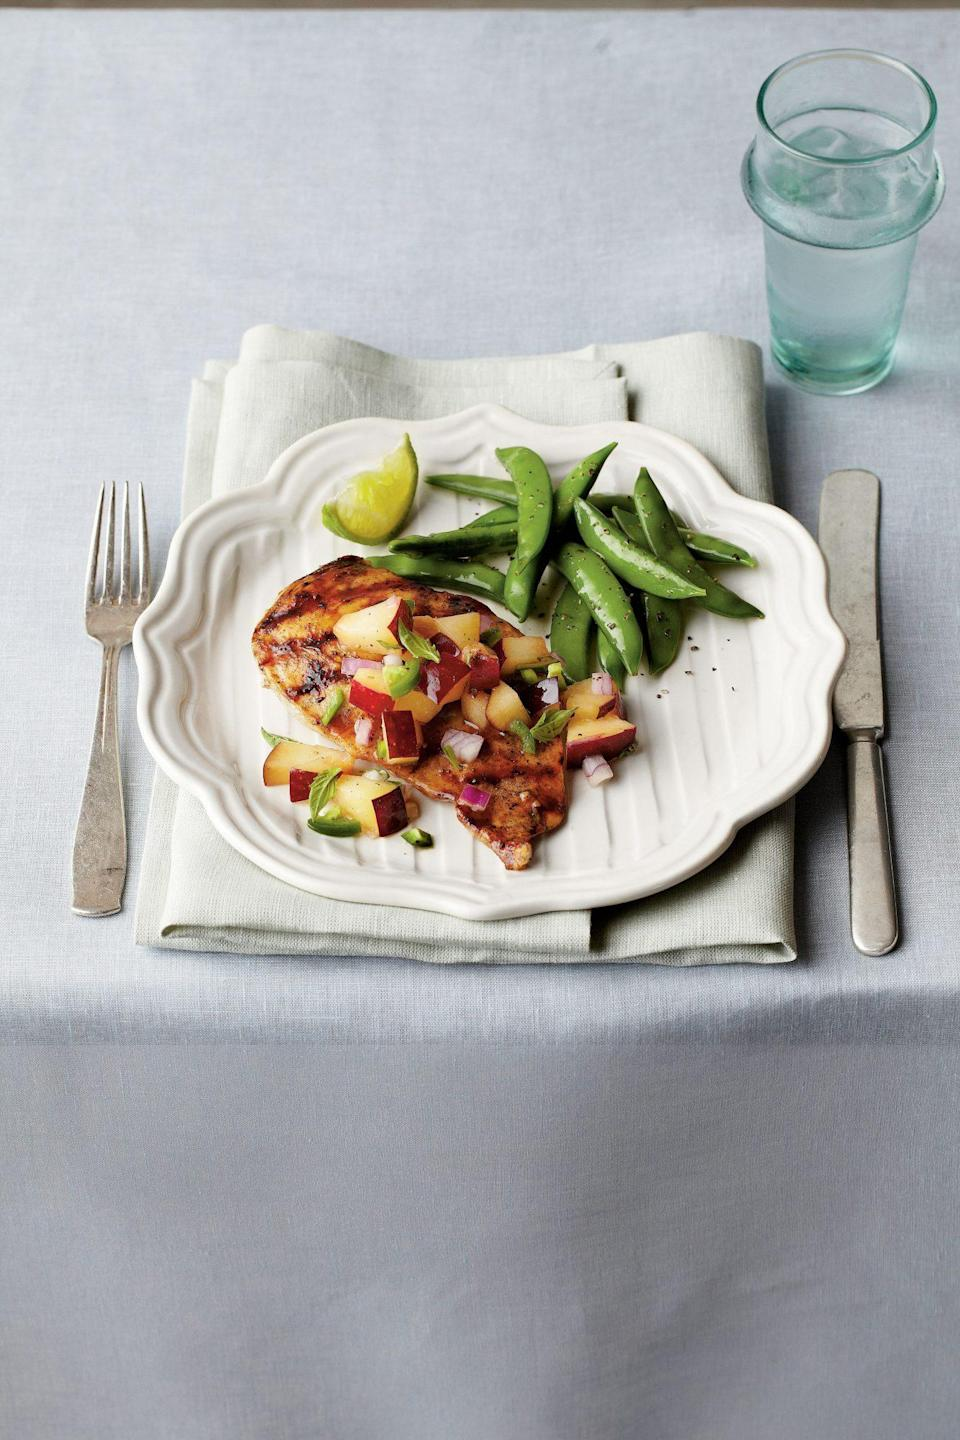 """<p><strong>Recipe: </strong><a href=""""https://www.southernliving.com/syndication/pan-grilled-chicken-fresh"""" rel=""""nofollow noopener"""" target=""""_blank"""" data-ylk=""""slk:Pan-Grilled Chicken with Fresh Plum Salsa"""" class=""""link rapid-noclick-resp""""><strong>Pan-Grilled Chicken with Fresh Plum Salsa</strong></a></p> <p>This entire dish comes together in just under 30 minutes, providing the perfect summertime supper in a flash. A jalapeno pepper and chopped red onion bring a bit of heat that plays off the sweet, ripe plums.</p>"""